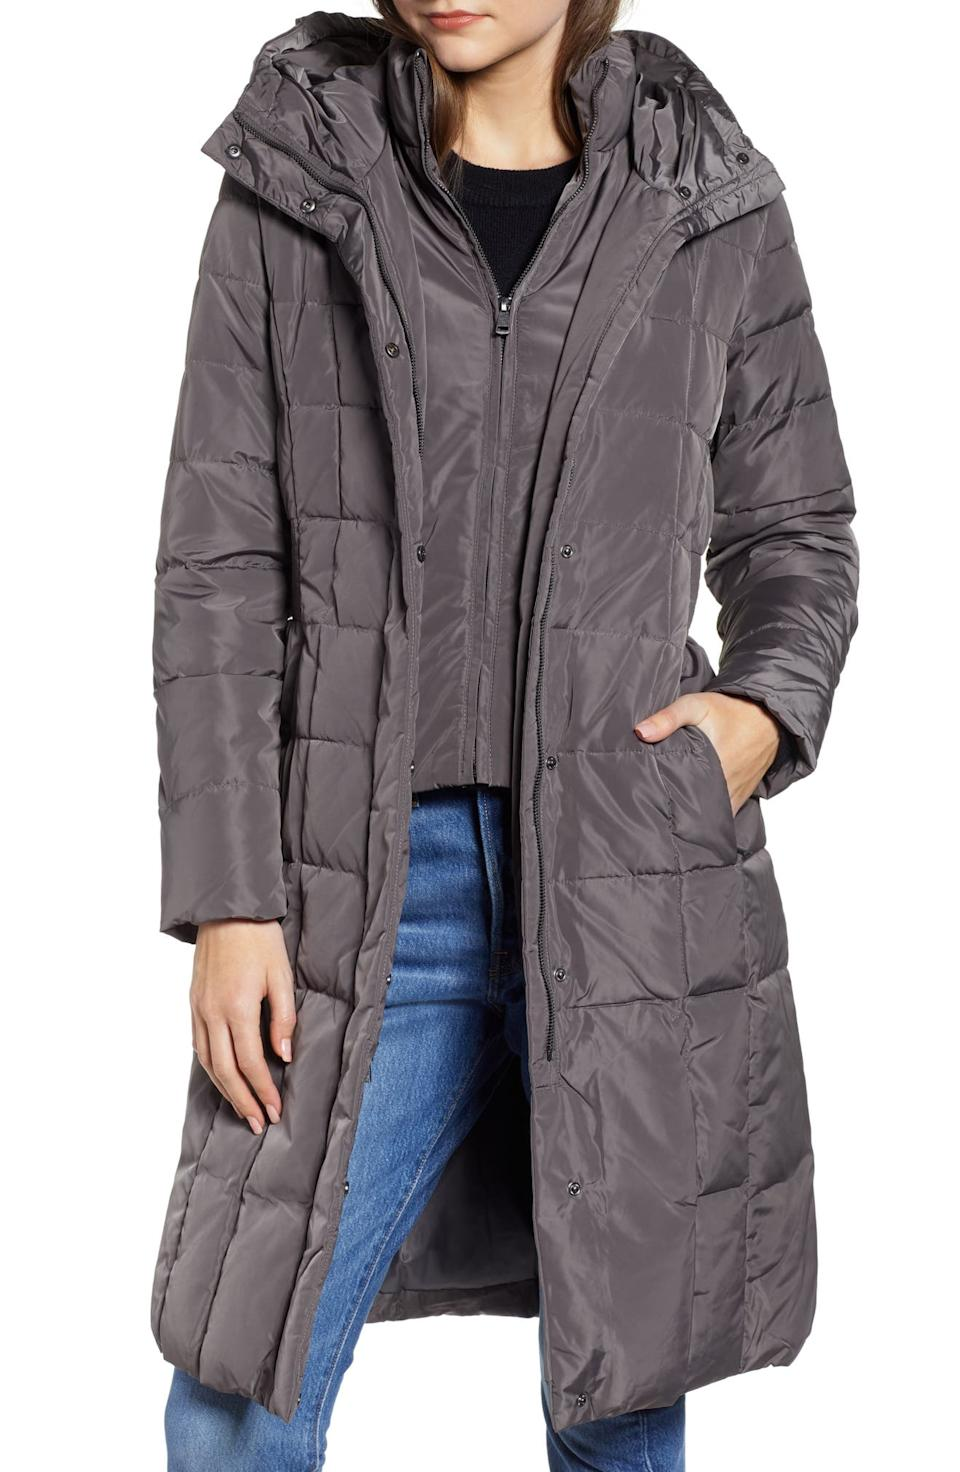 Cole Haan Bib Insert Down & Feather Fill Coat. Image via Nordstrom.